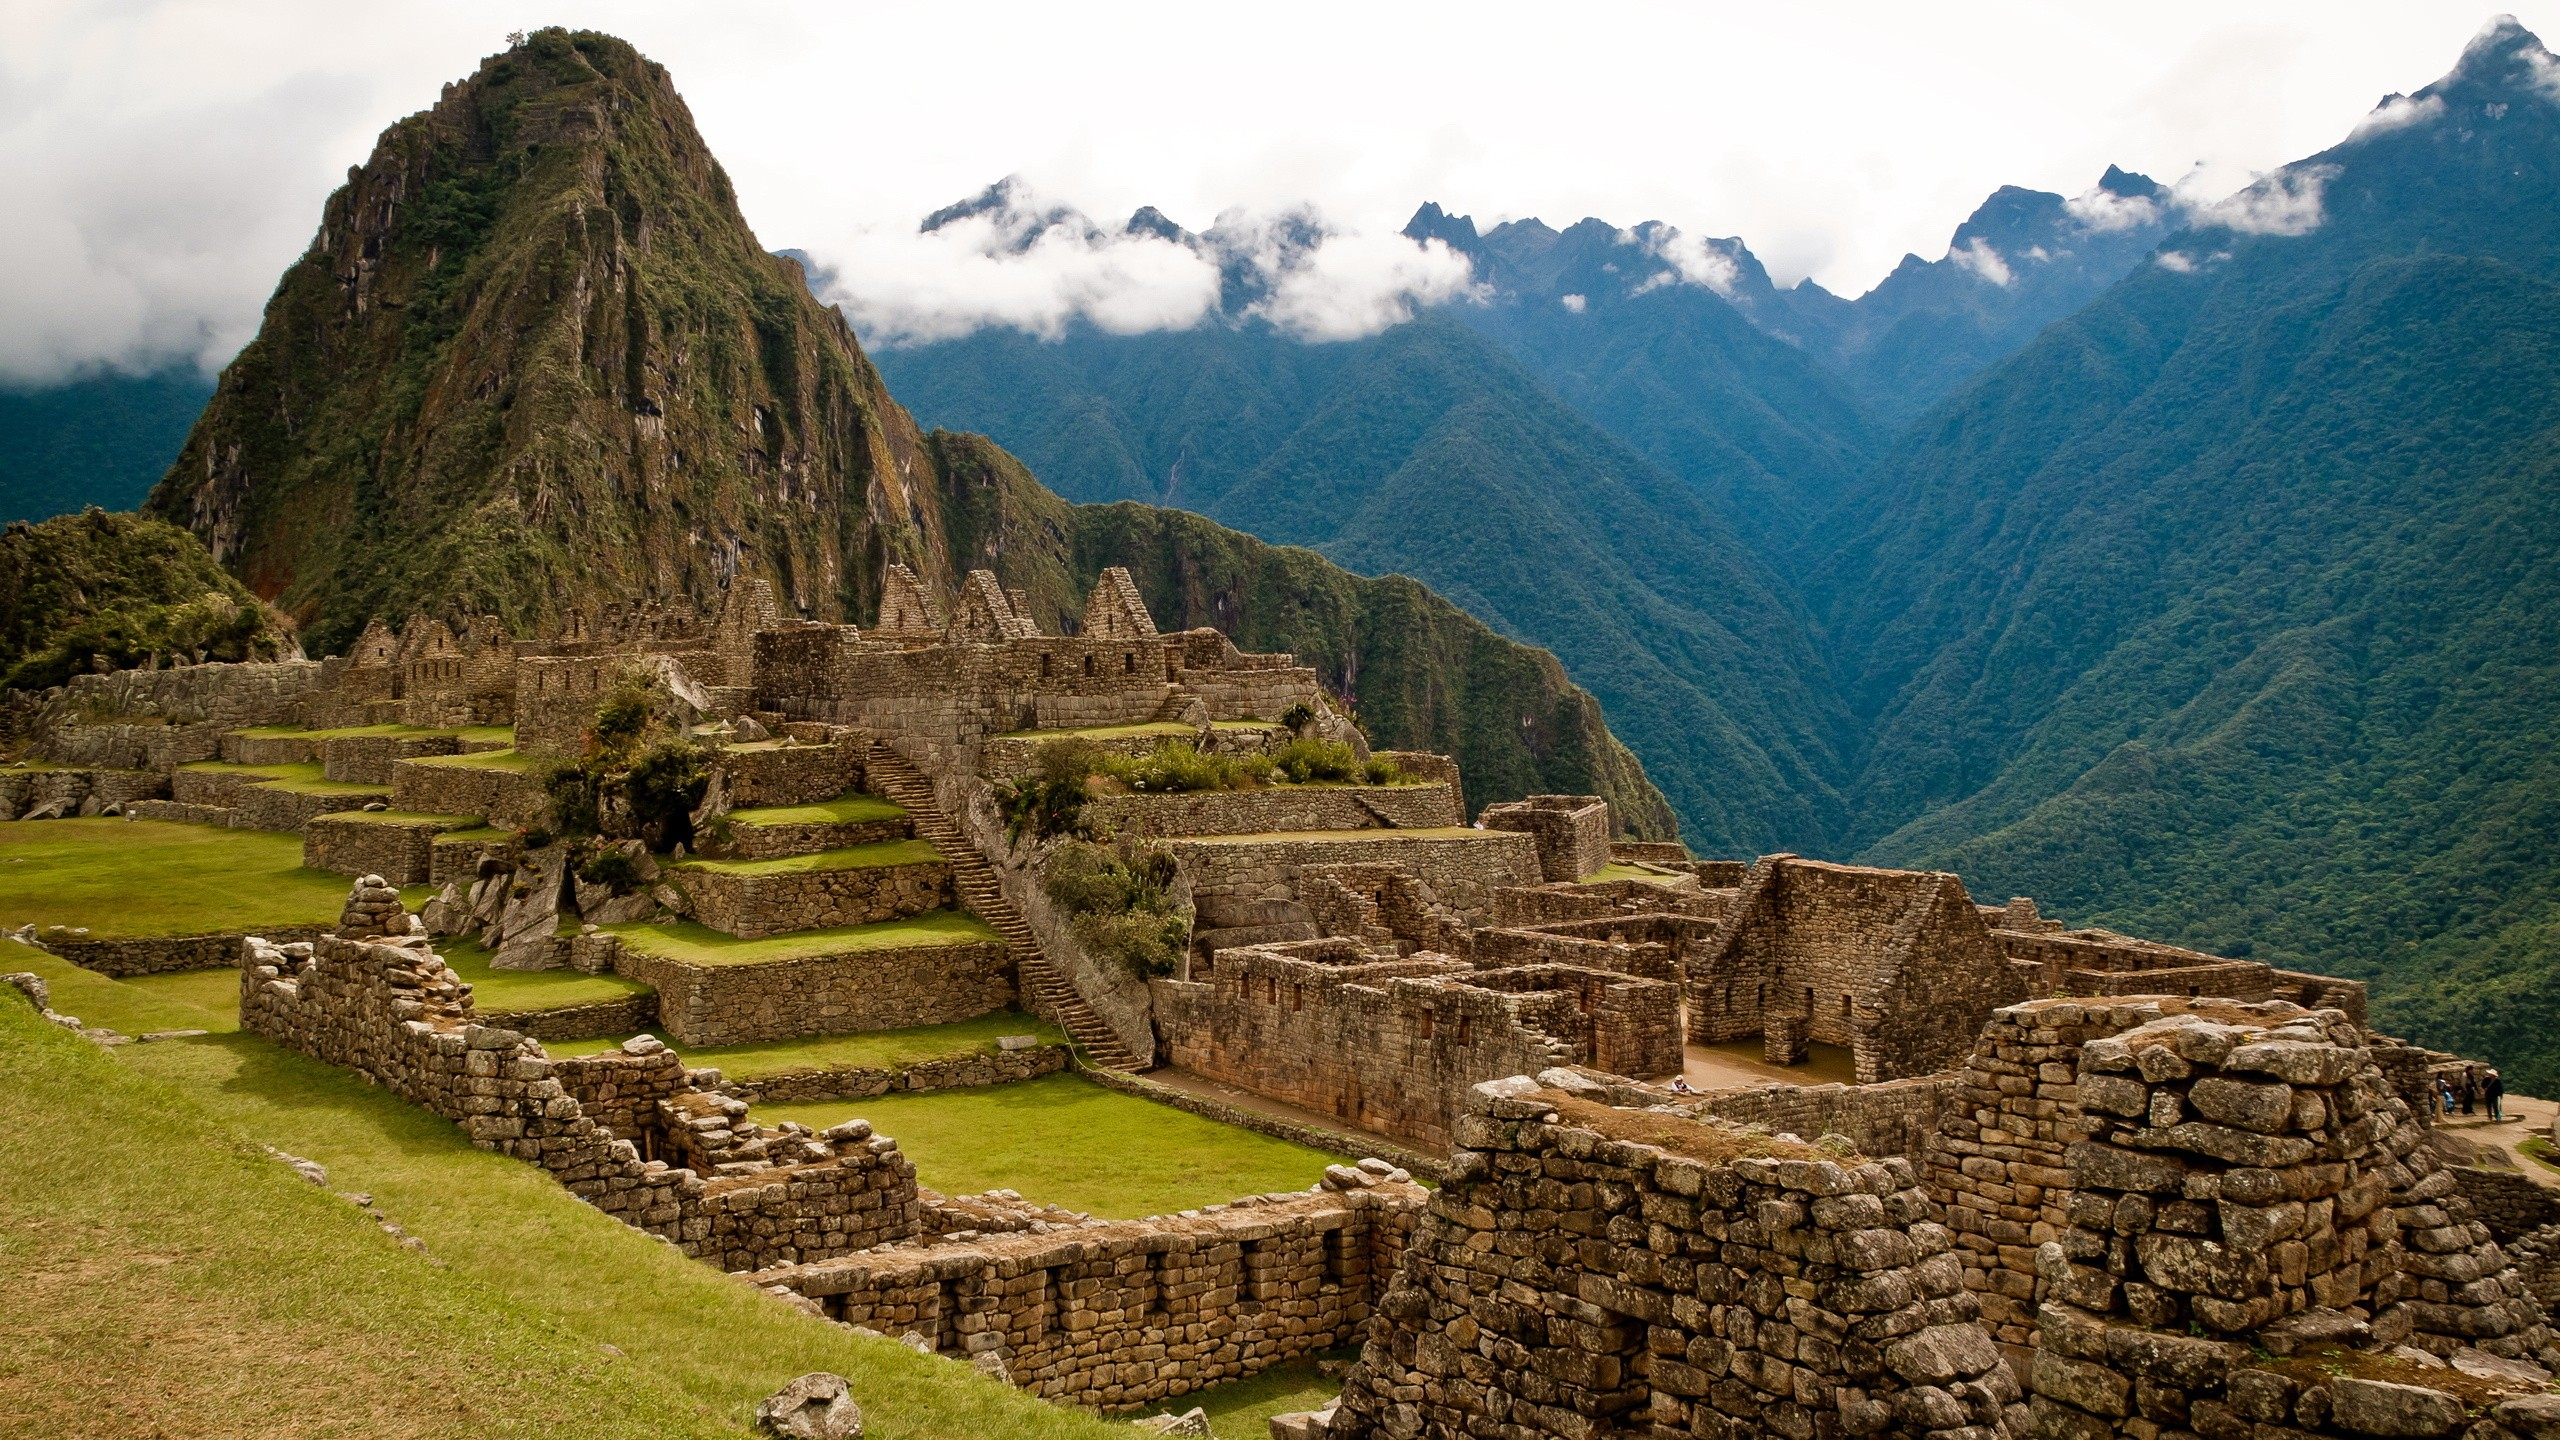 landscapes-nature-ruins-Machu-Picchu-abandoned-city-x-wallpaper-wp427034-1